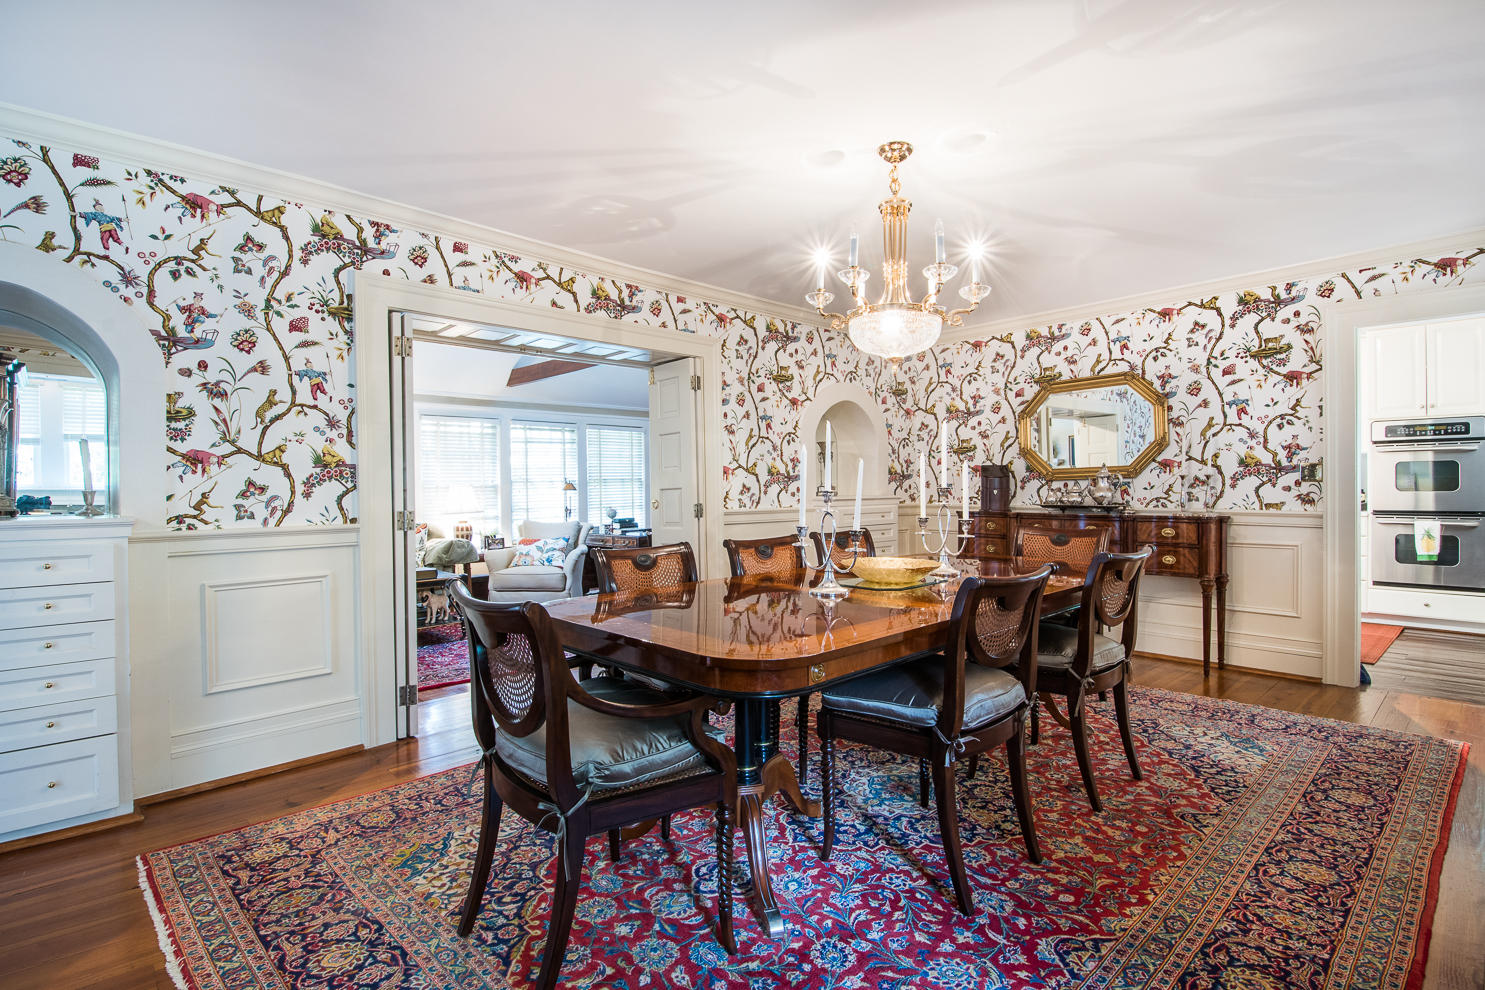 South of Broad Homes For Sale - 1 Prices, Charleston, SC - 17